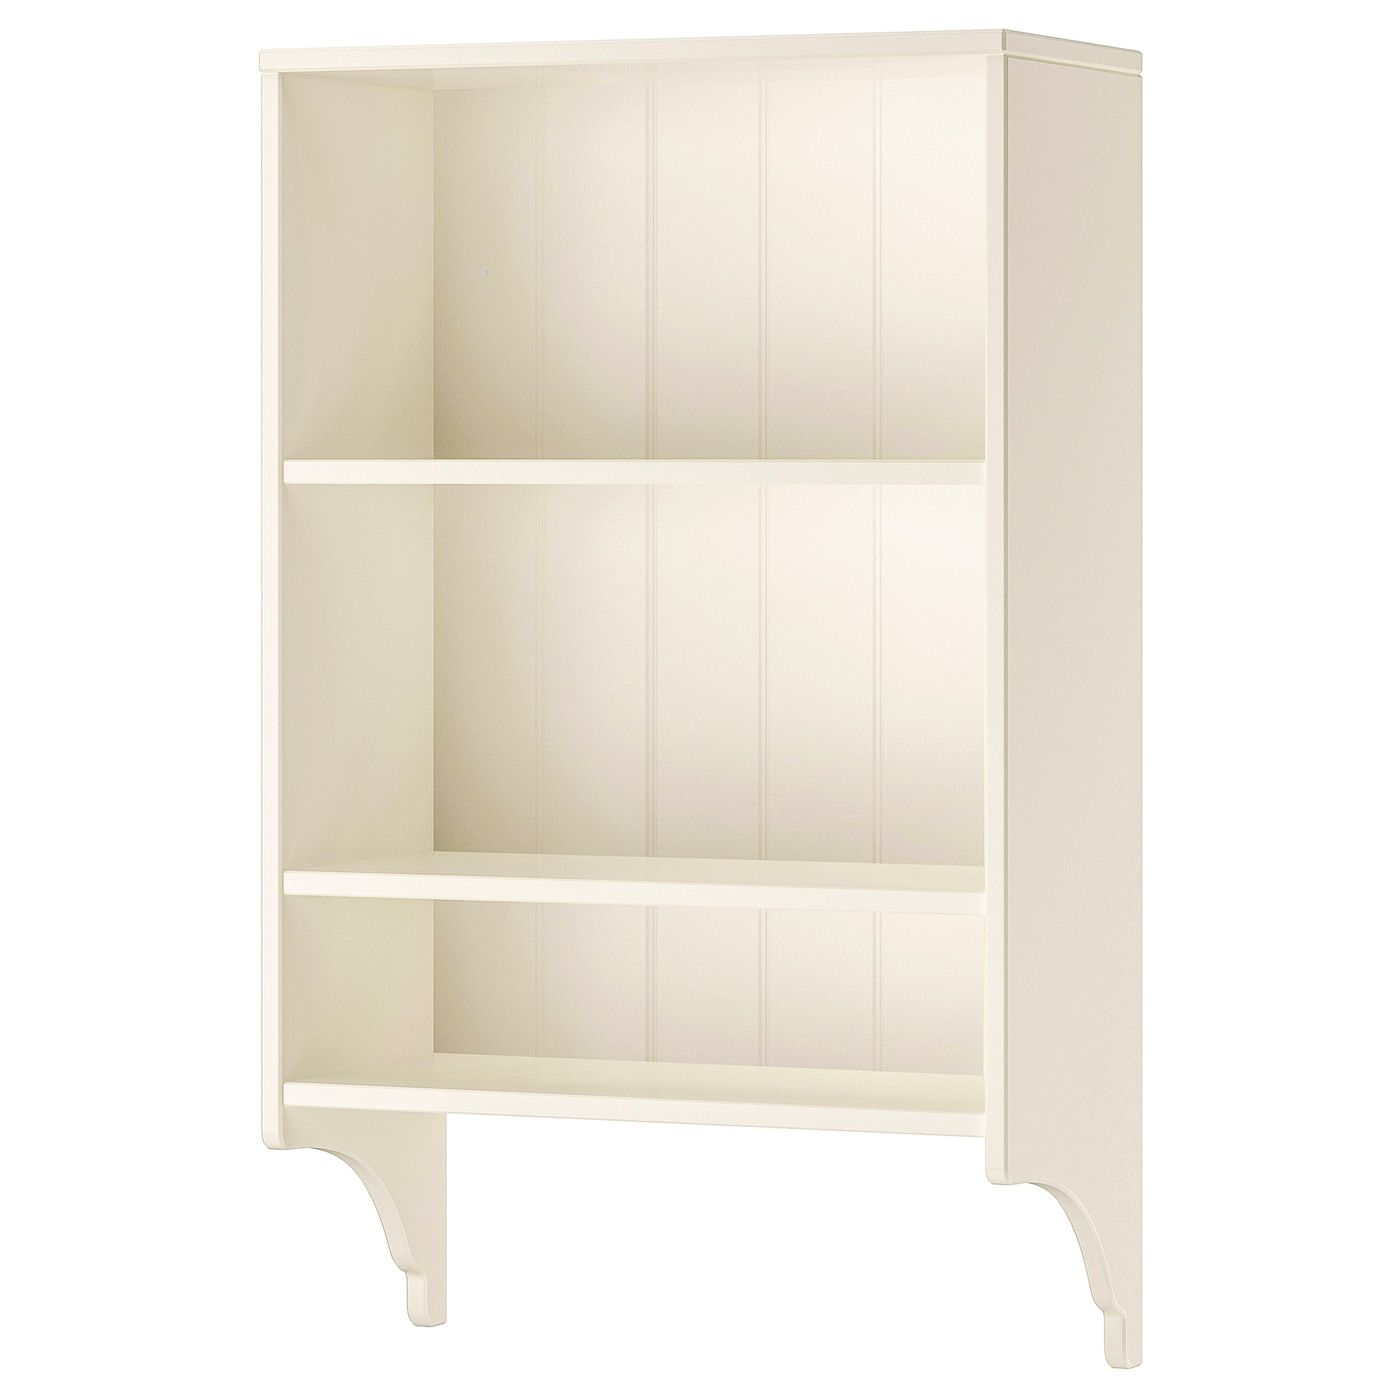 Ikea Lack Wandregal Birke Tornviken Wall Shelf Off White In 2019 Organization Ikea Wall